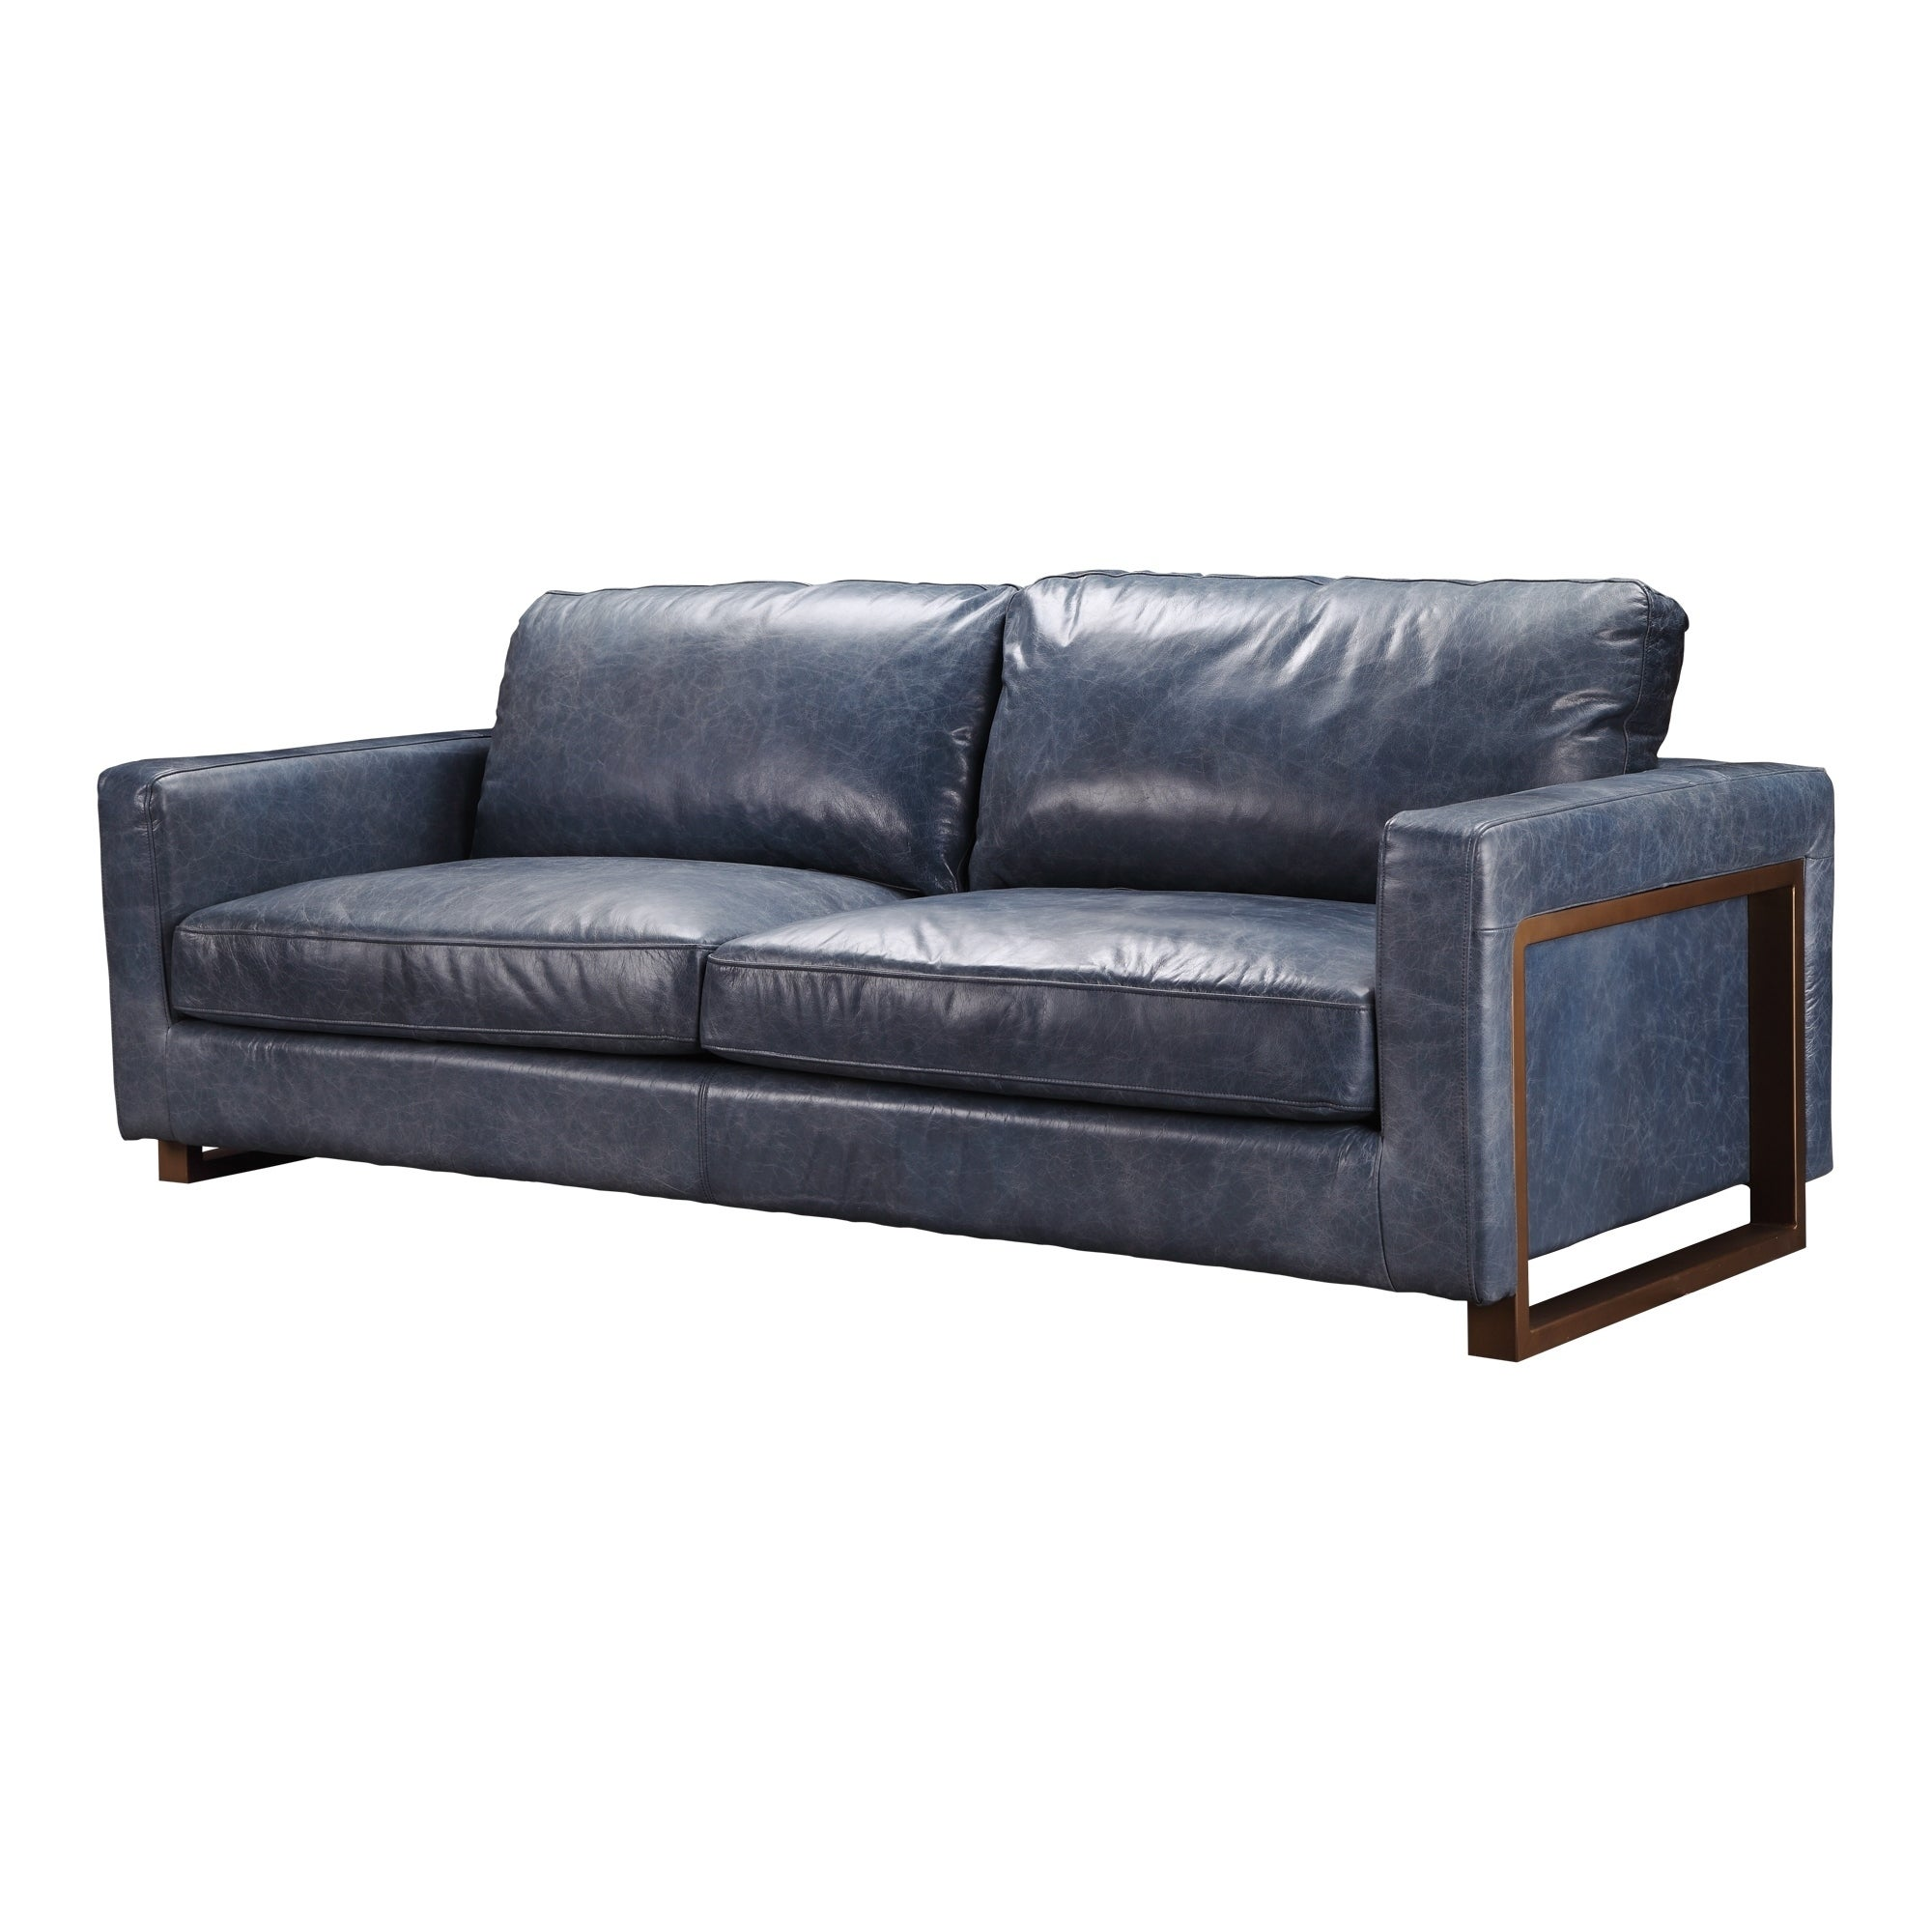 Aurelle Home Navy Blue Leather And Iron Modern Sofa Overstock 28236619